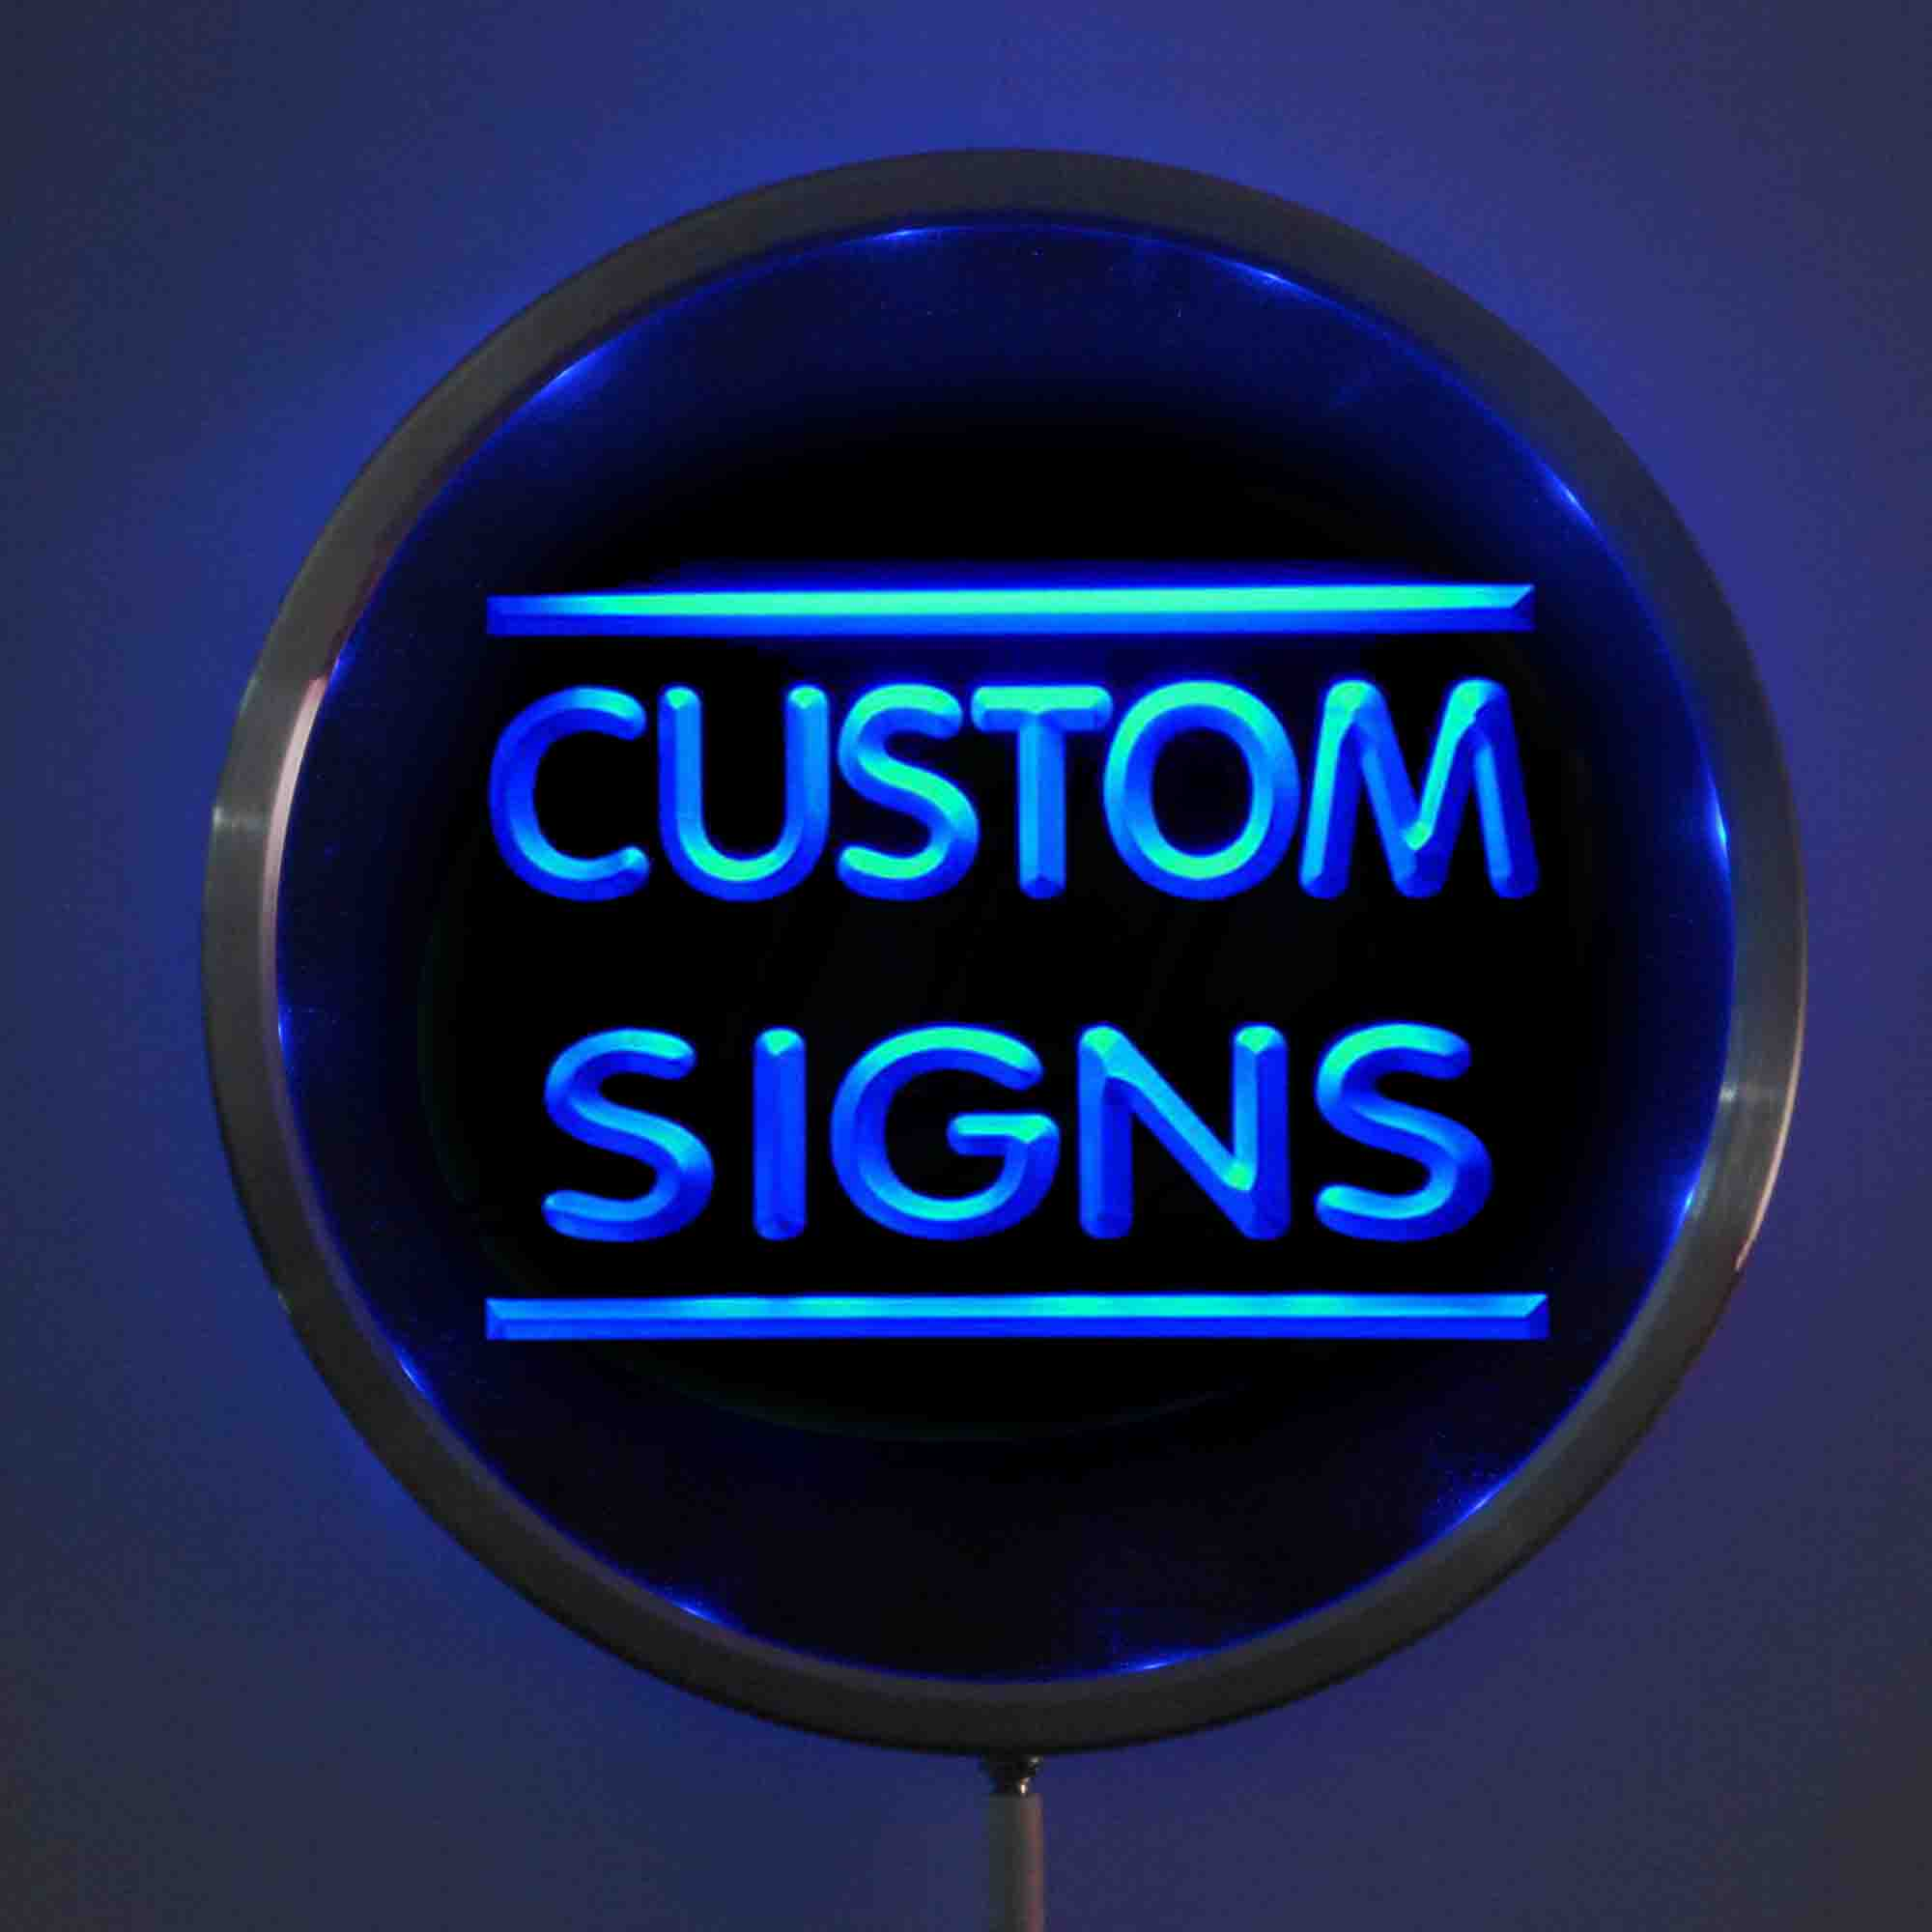 Round Custom LED Neon Signs 25cm/ 10 Inch - Design Your Own Circle LED Signs With RGB Multi-Color Remote Wireless Control